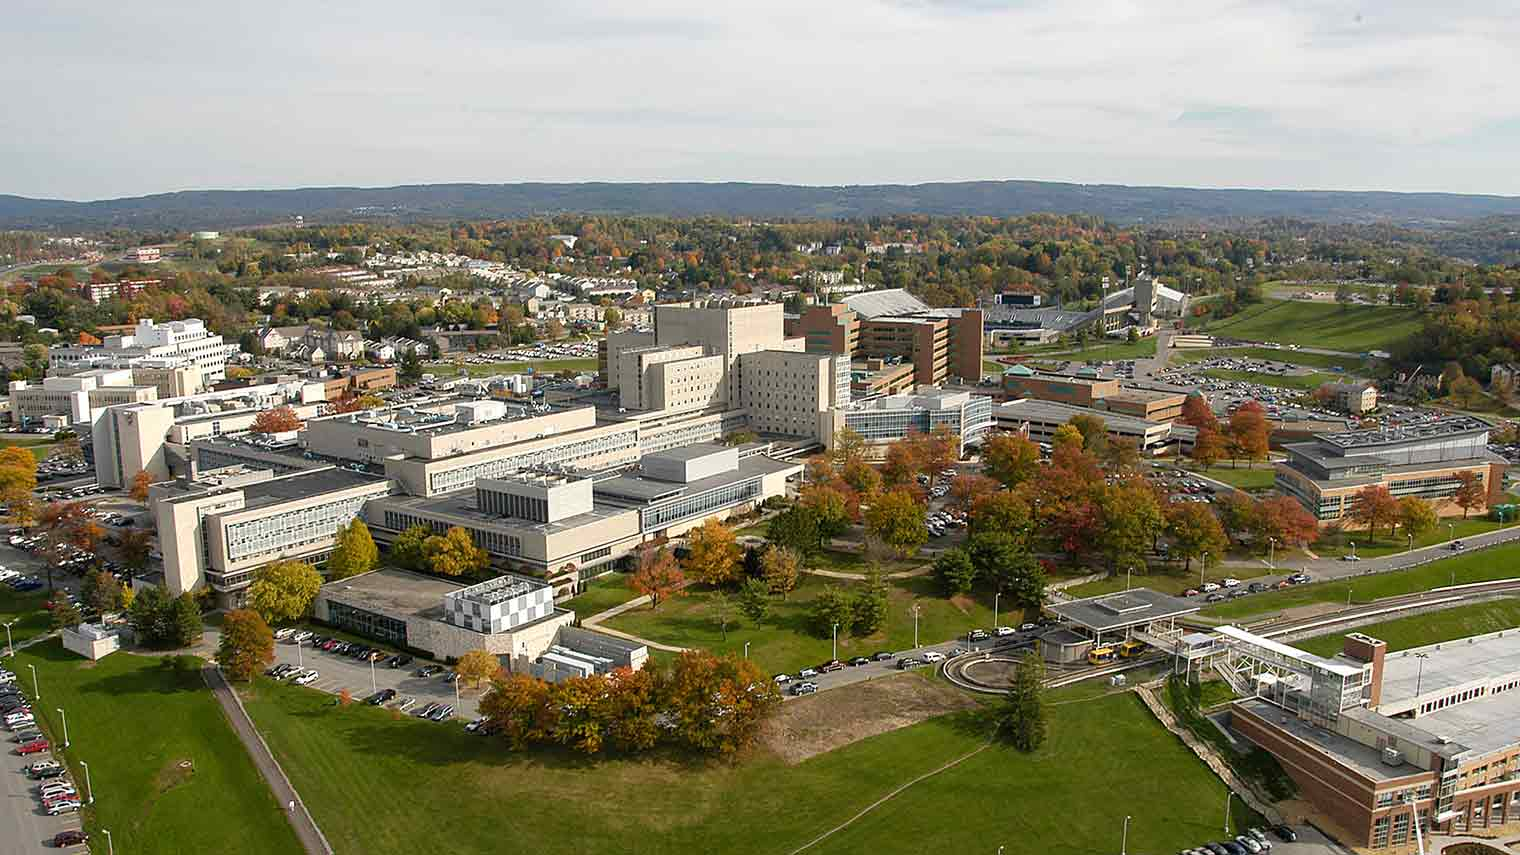 Morgantown Campus